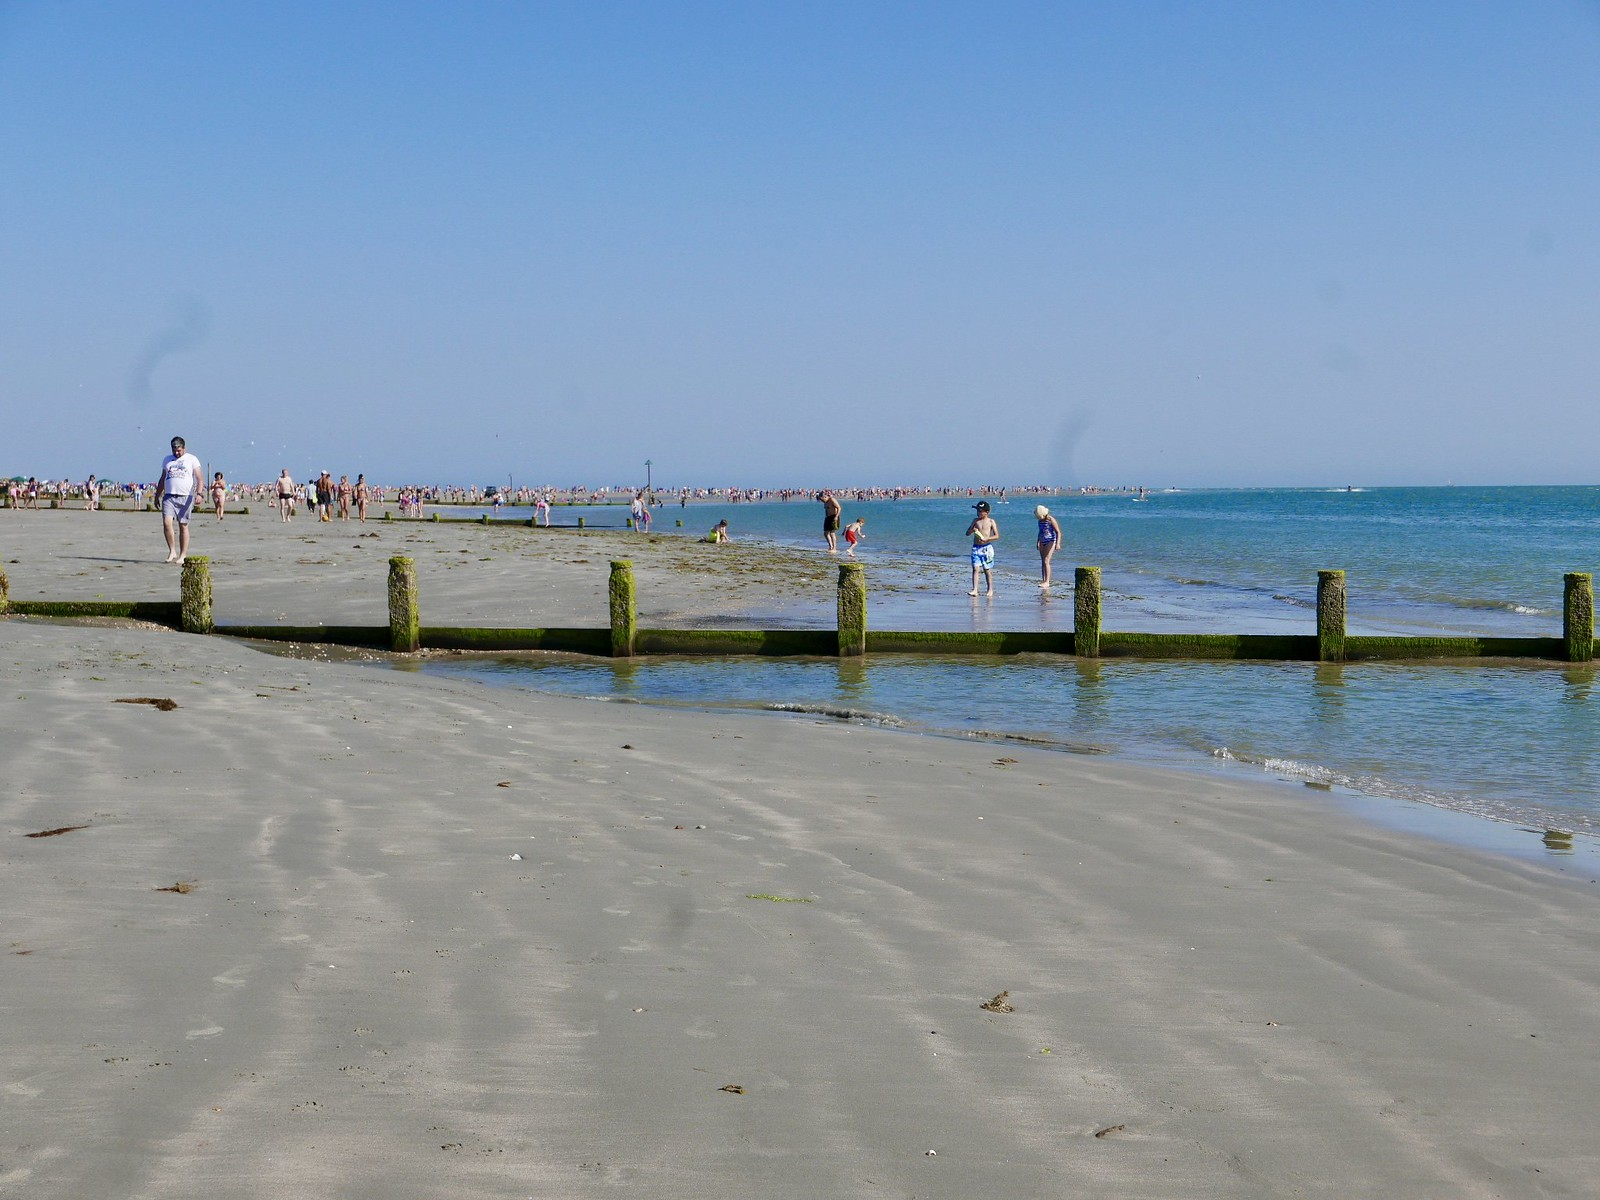 West Wittering beach scorching day on the beach